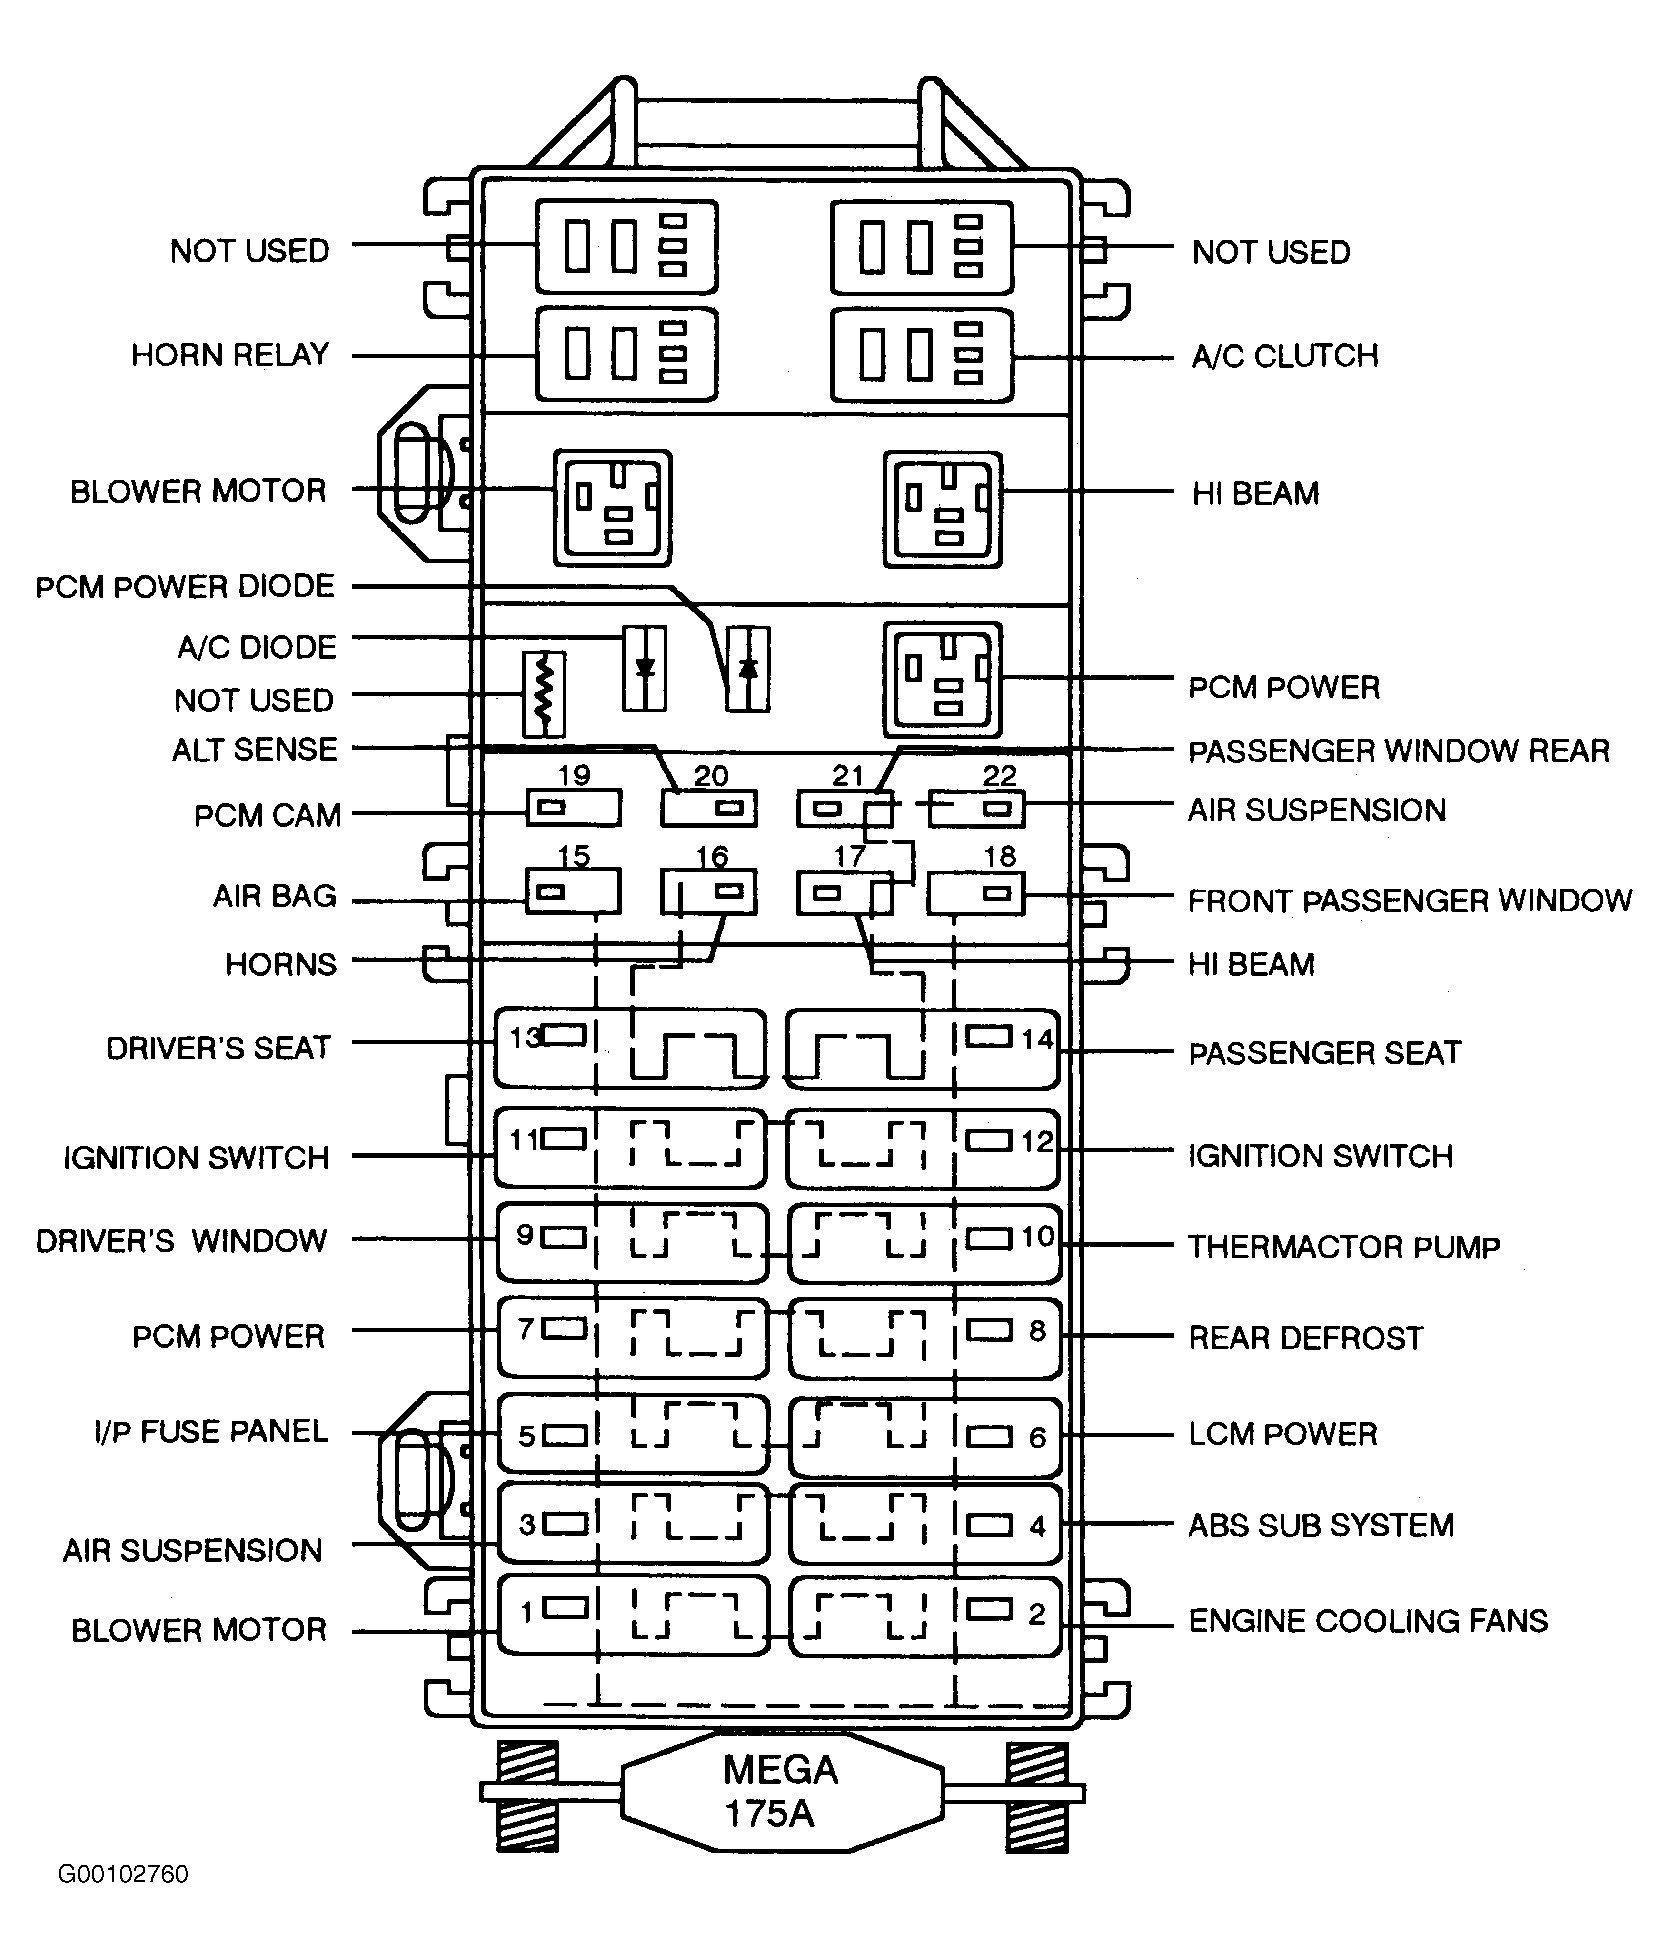 hight resolution of 1999 lincoln navigator fuse panel diagram wiring diagram centre 2004 navigator fuse box